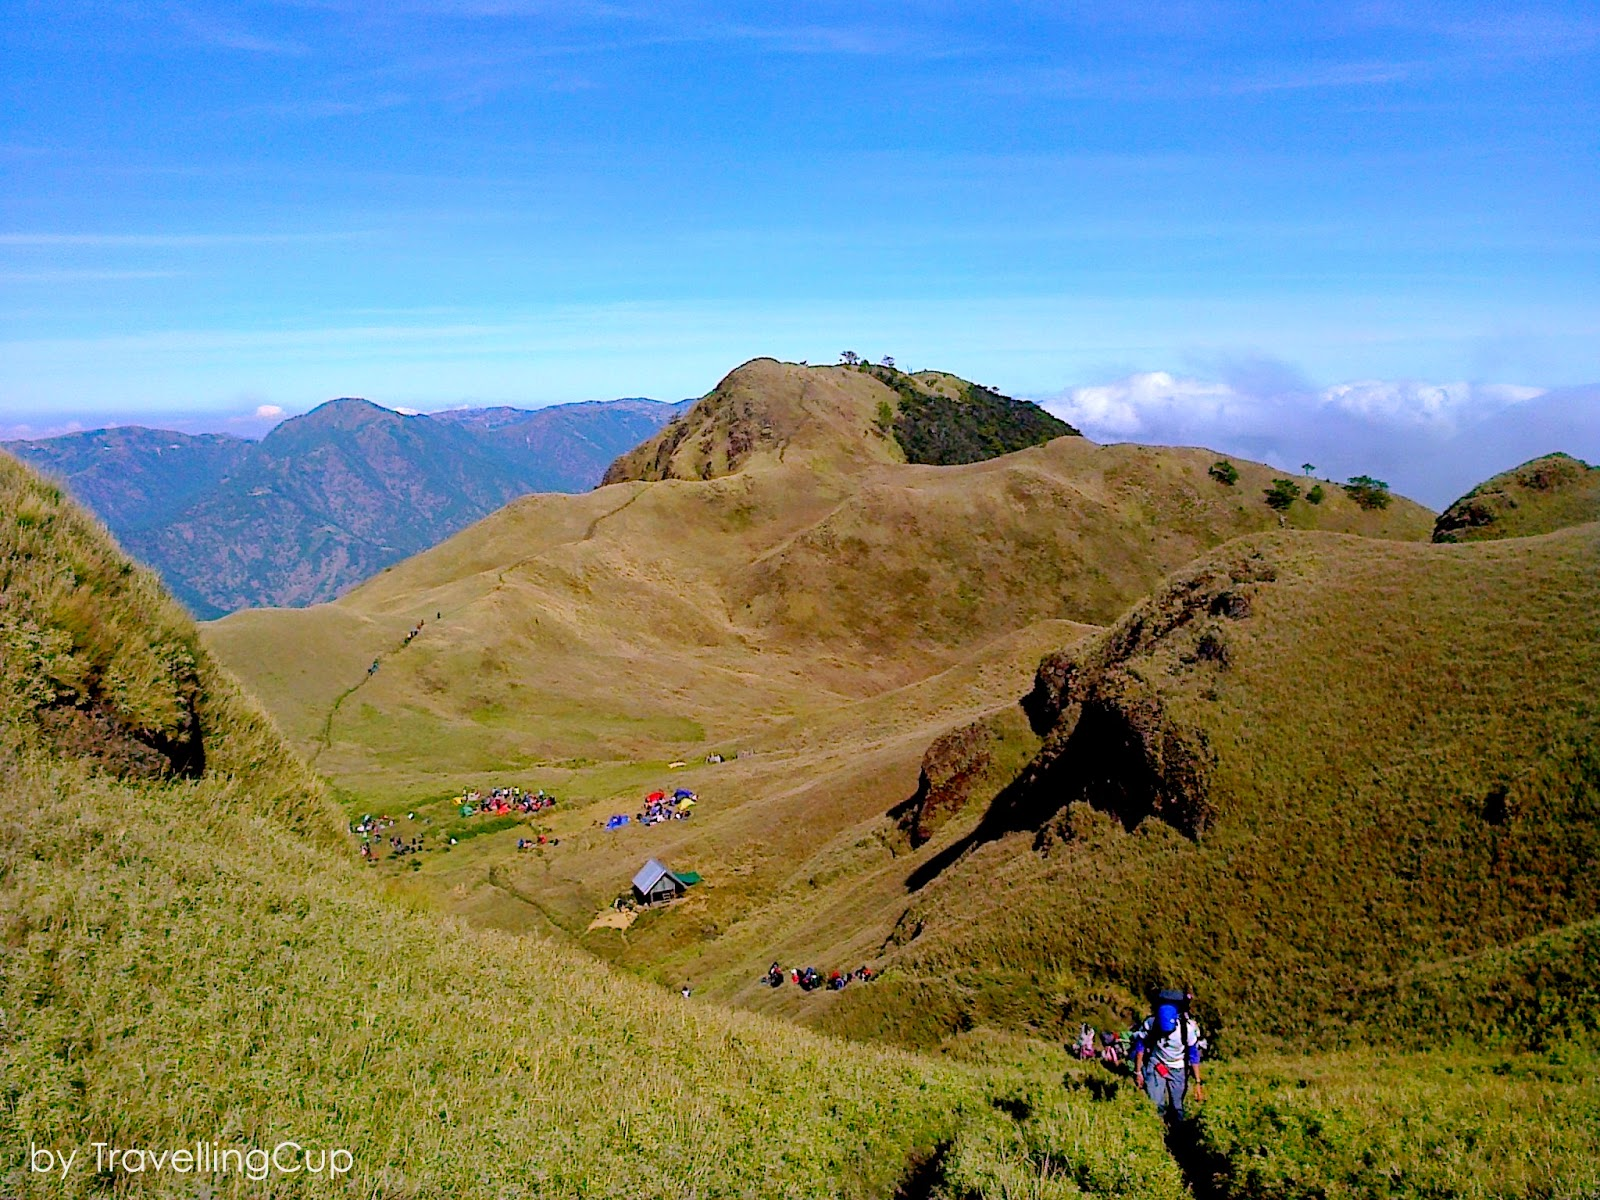 Camp Site in Mt. Pulag